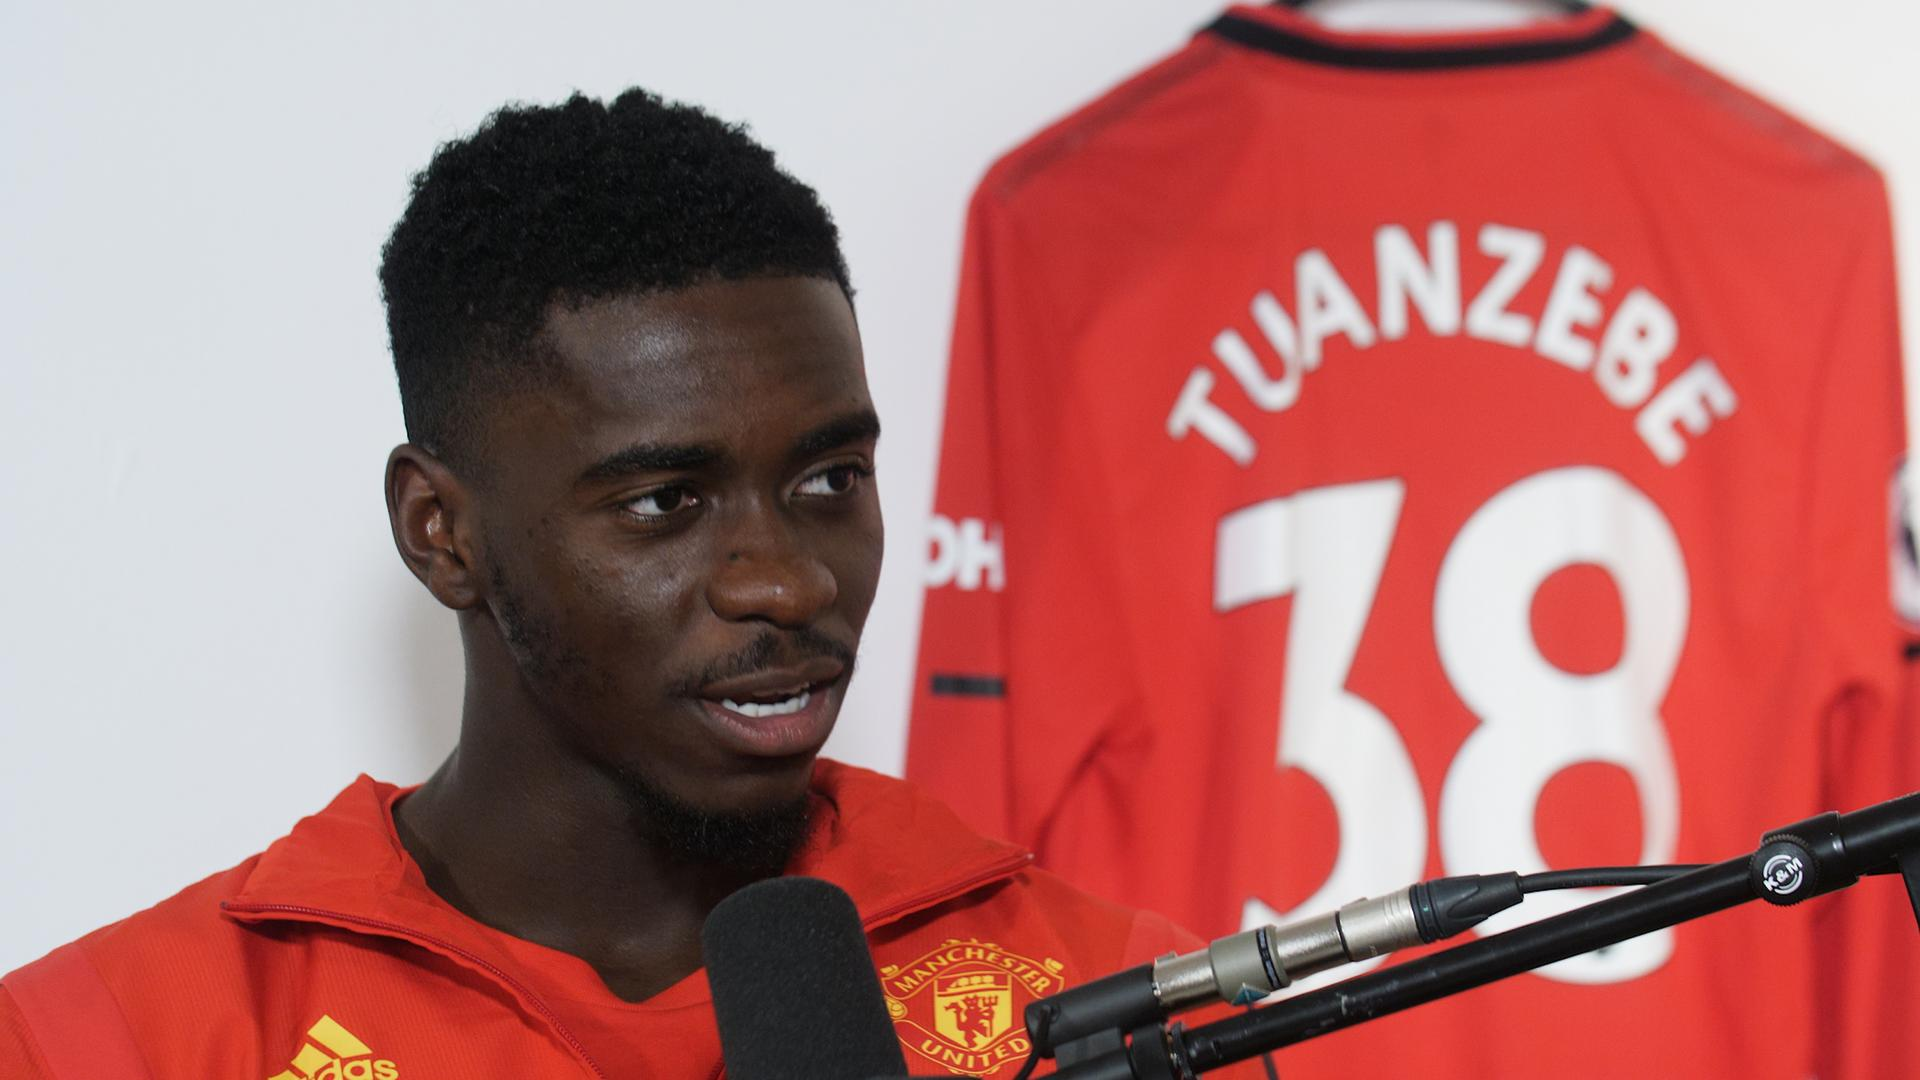 El defensor Axel Tuanzebe